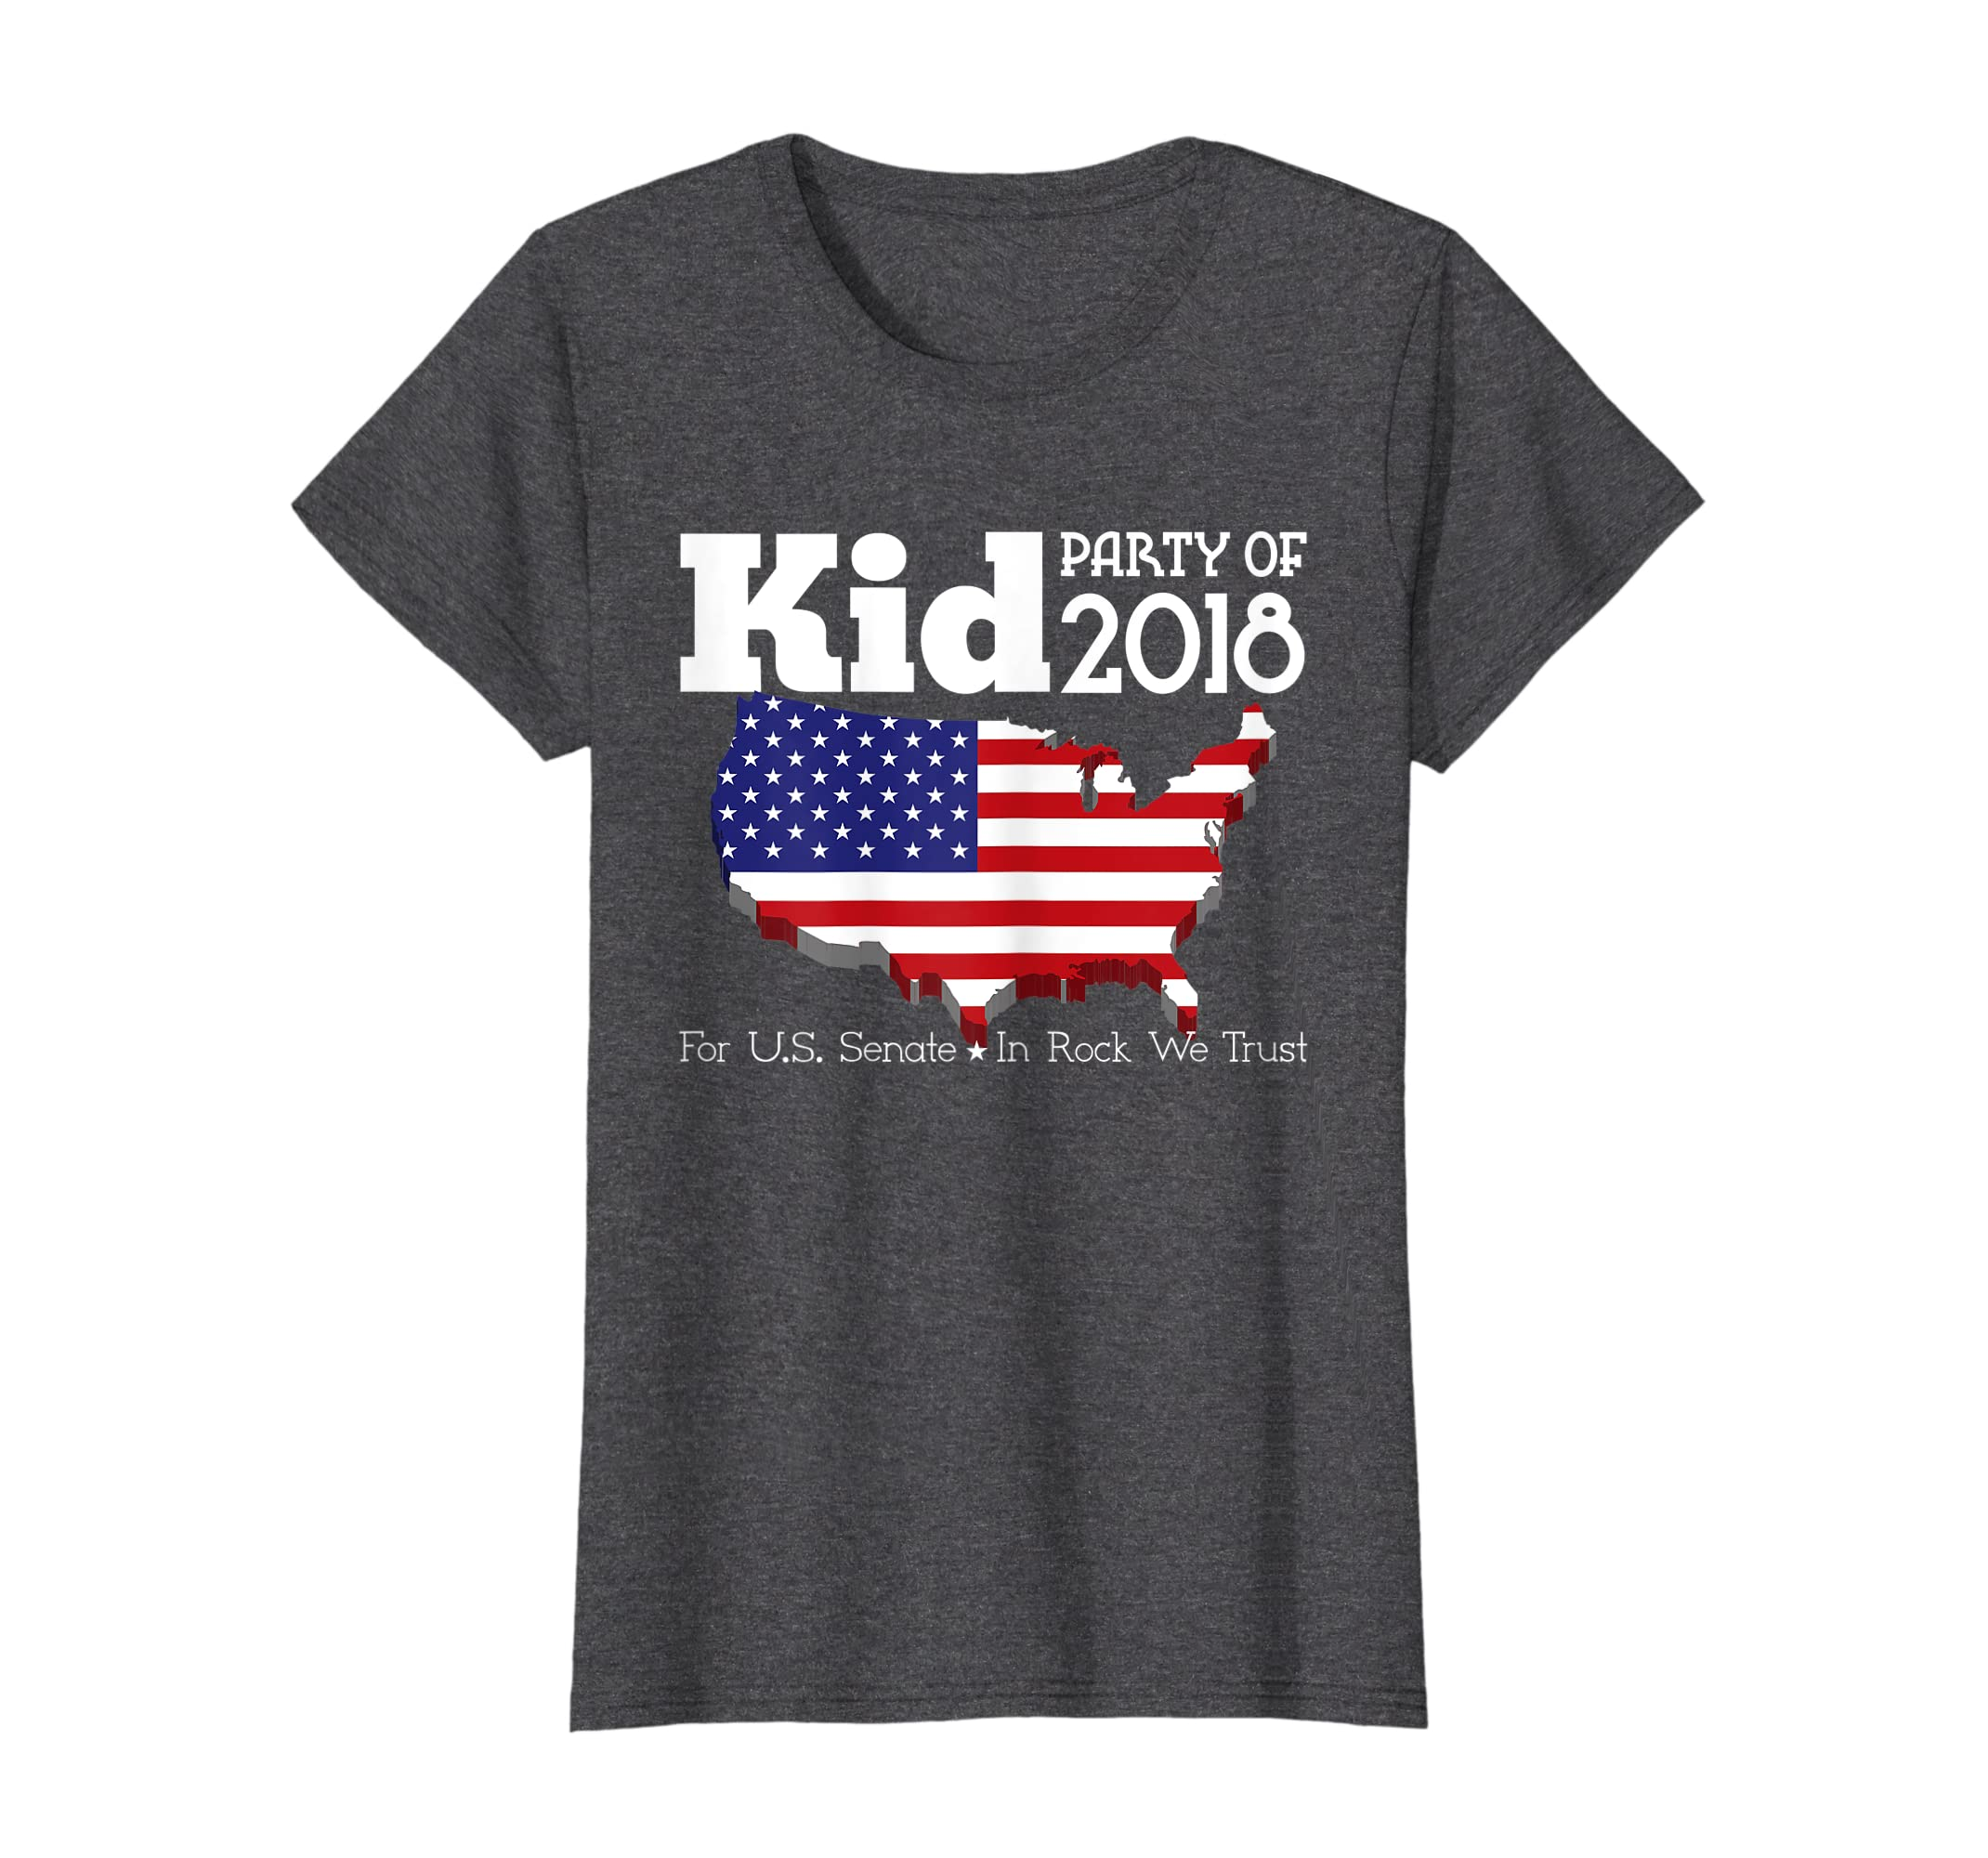 8b1f03891 Amazon.com: Kid For US Senate 2018 Election Shirt In Rock We Trust: Clothing